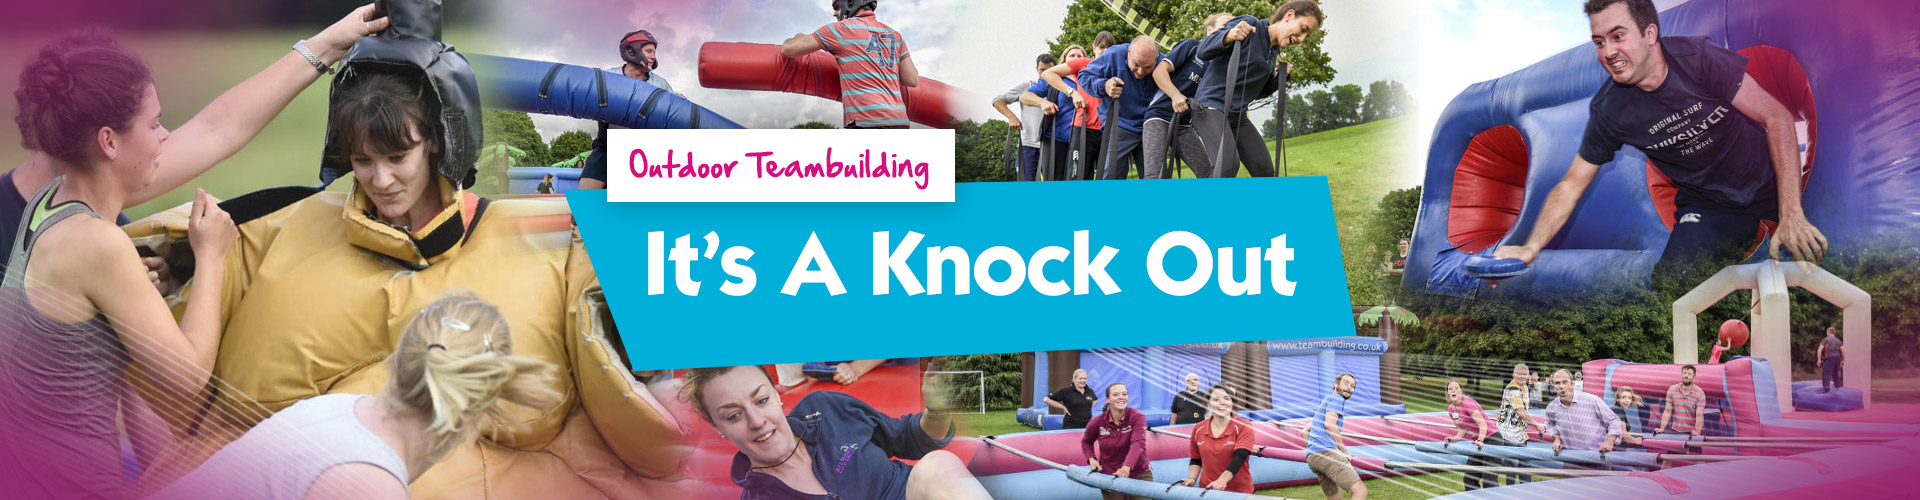 Teambuilding | It's A Knock Out